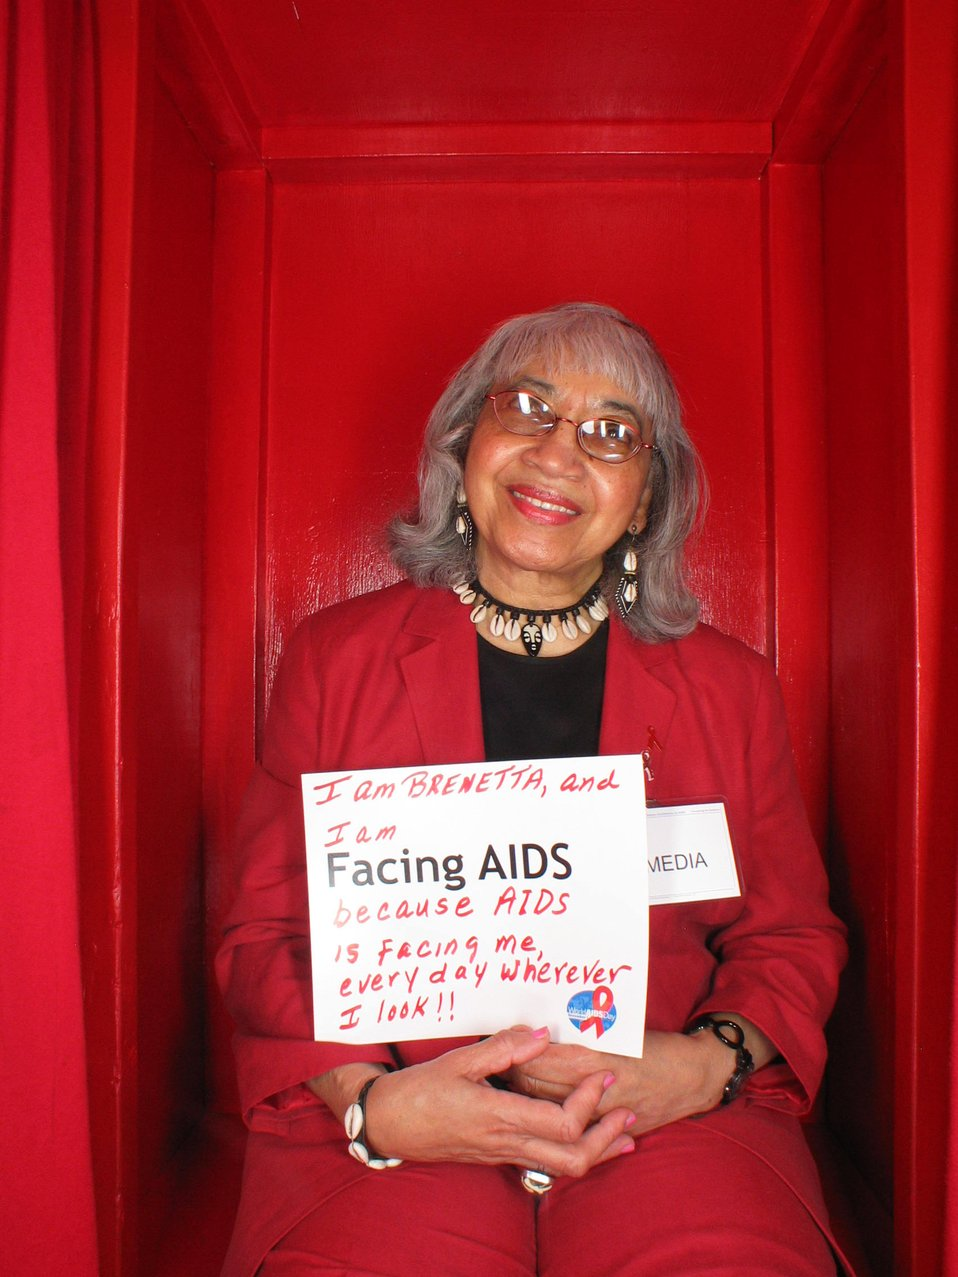 I'm Facing AIDS because AIDS is facing me every day wherever I look!!!